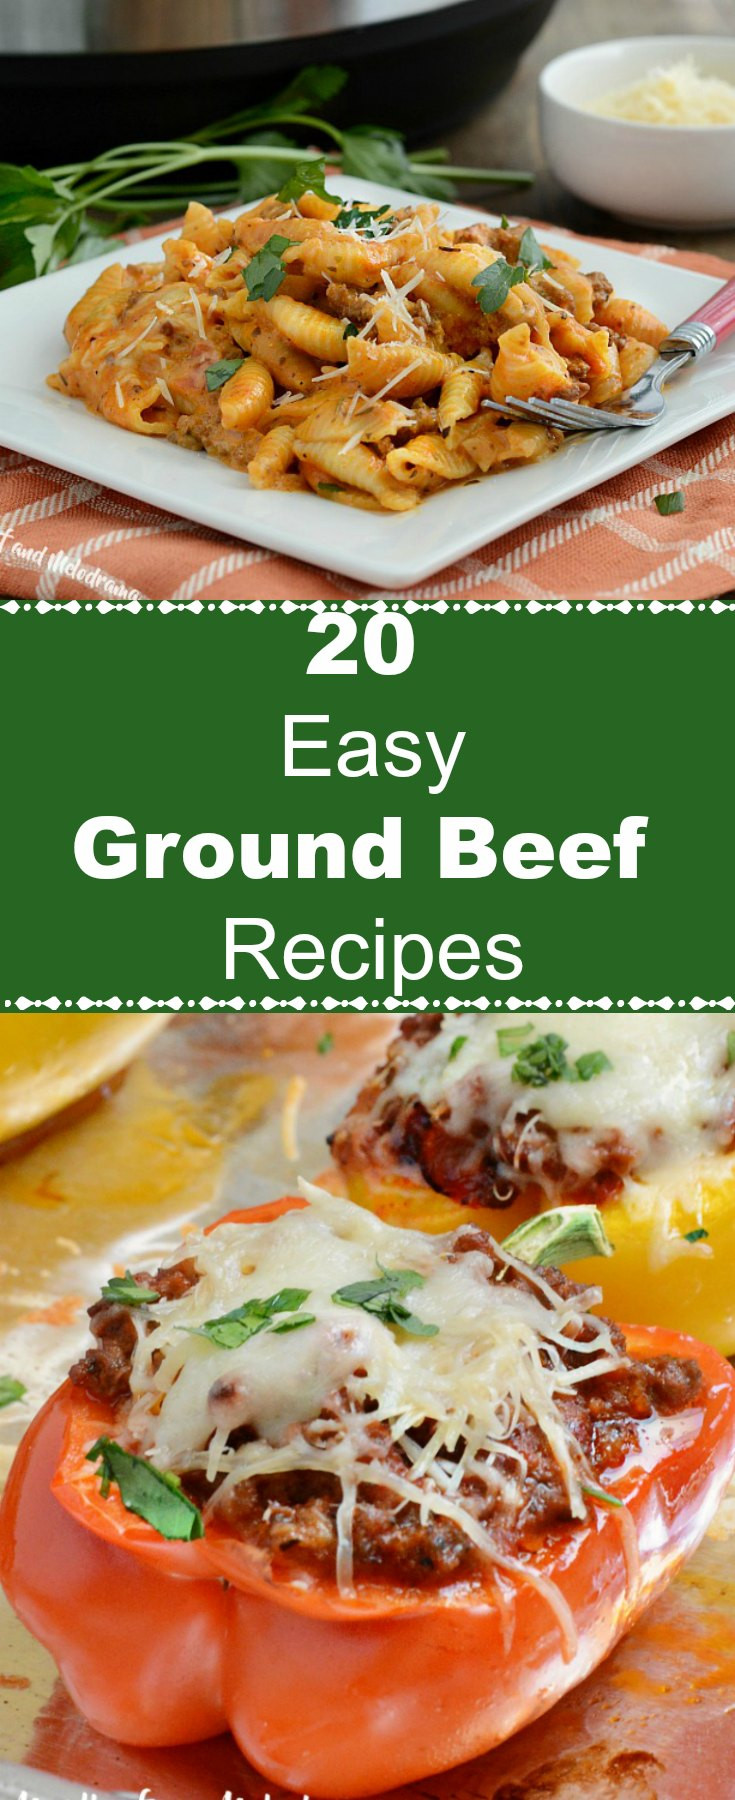 Easy Ground Pork Recipes  20 Easy Ground Beef Recipes Meatloaf and Melodrama